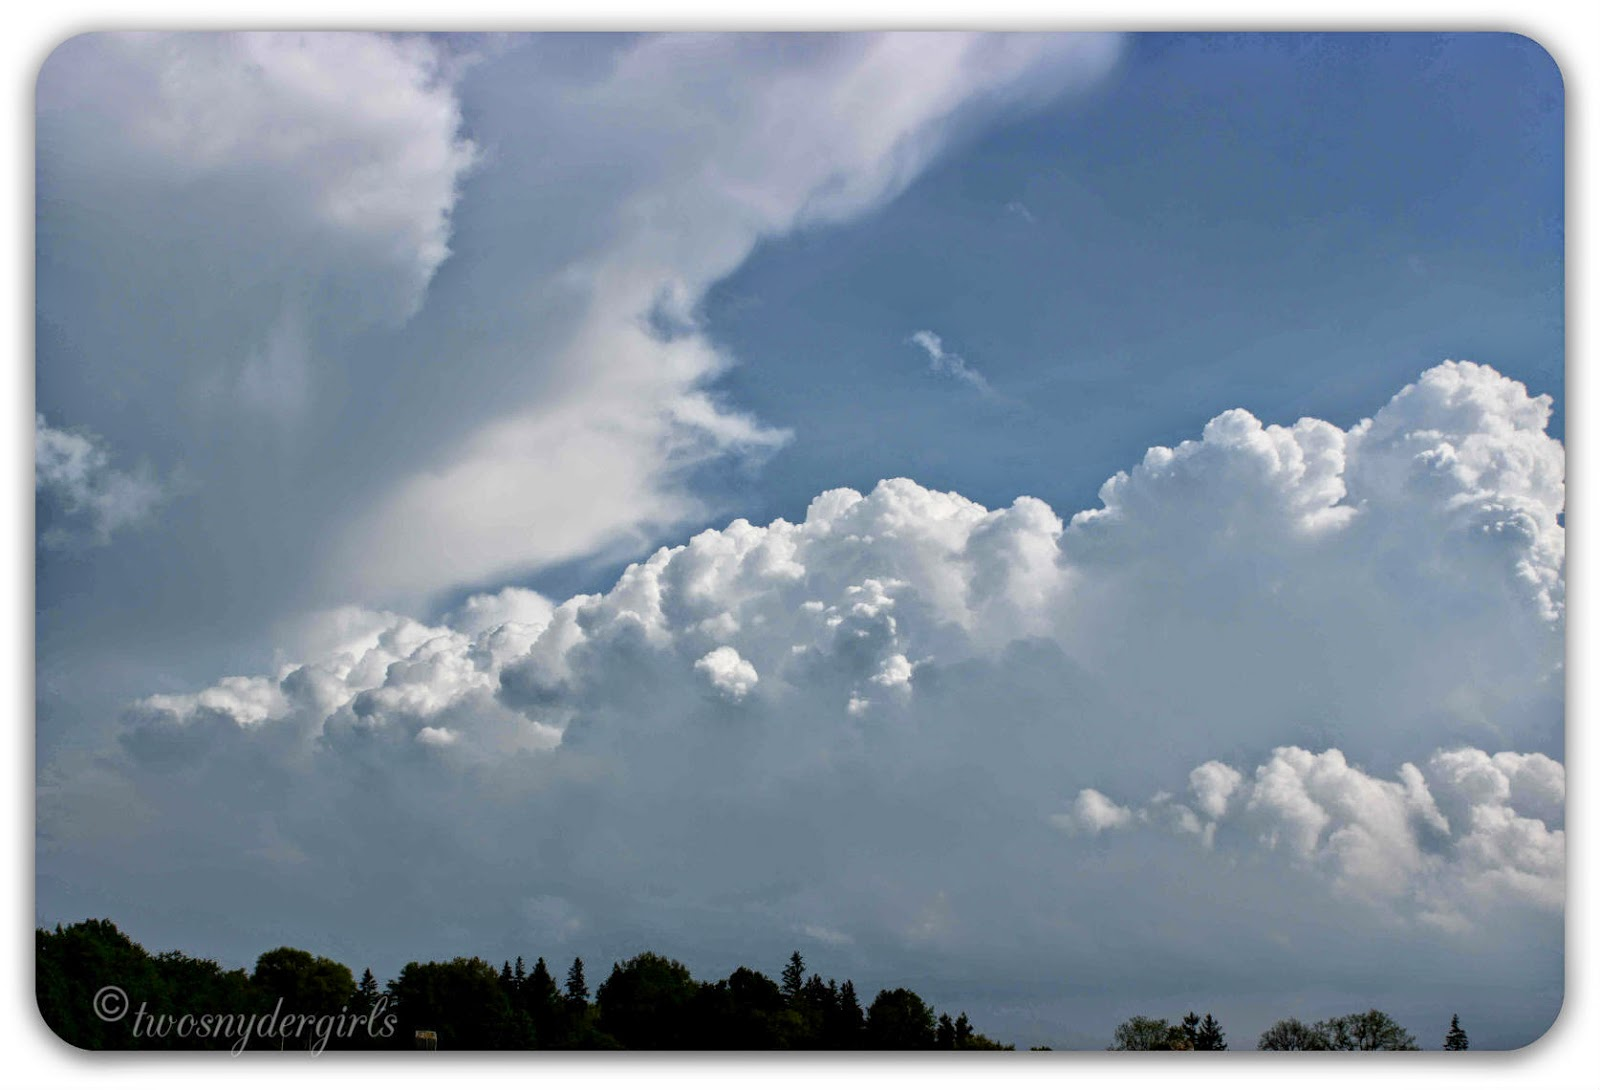 June 2, 2014 Storm Clouds over Southern Ontario CA